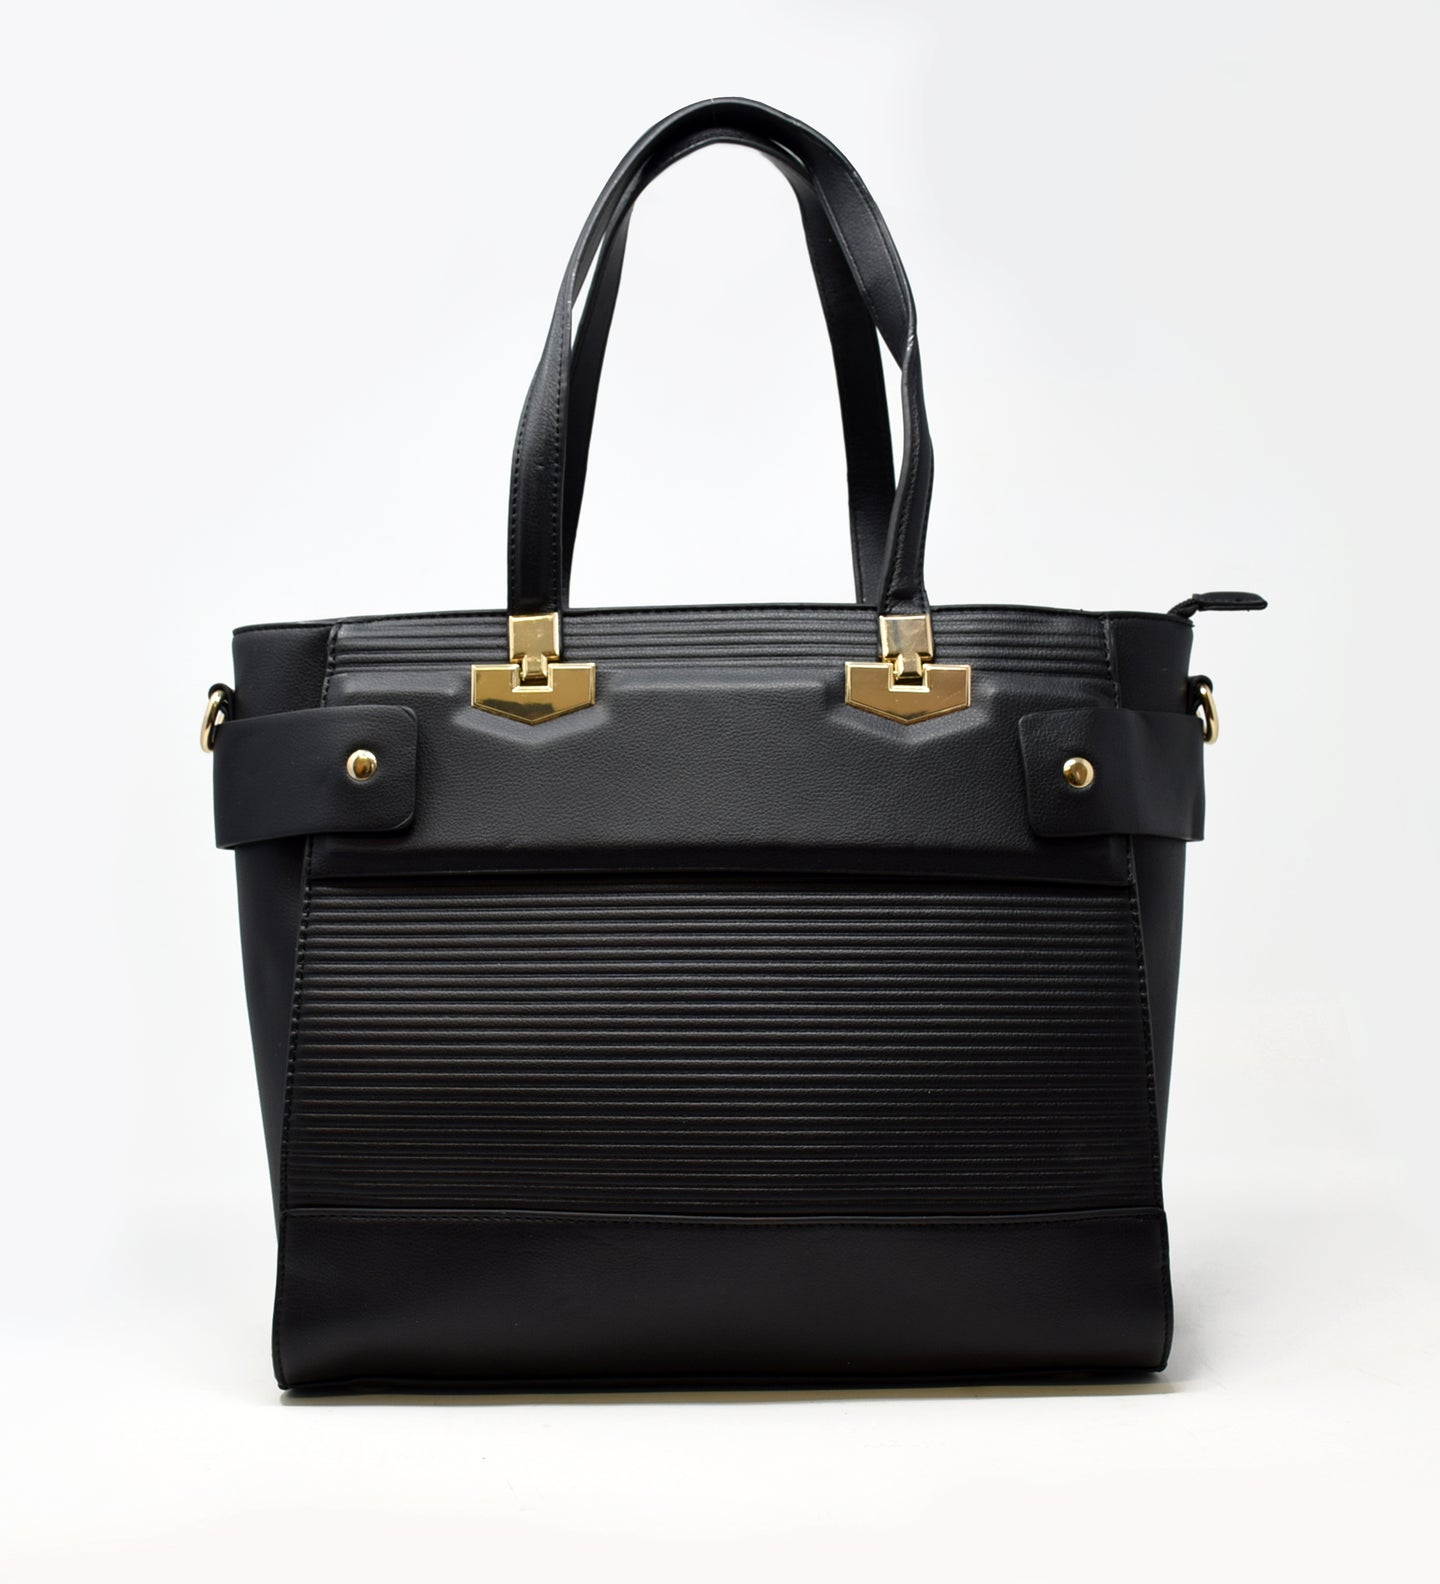 88870 Formal Laptop Work Handbag Wholesale